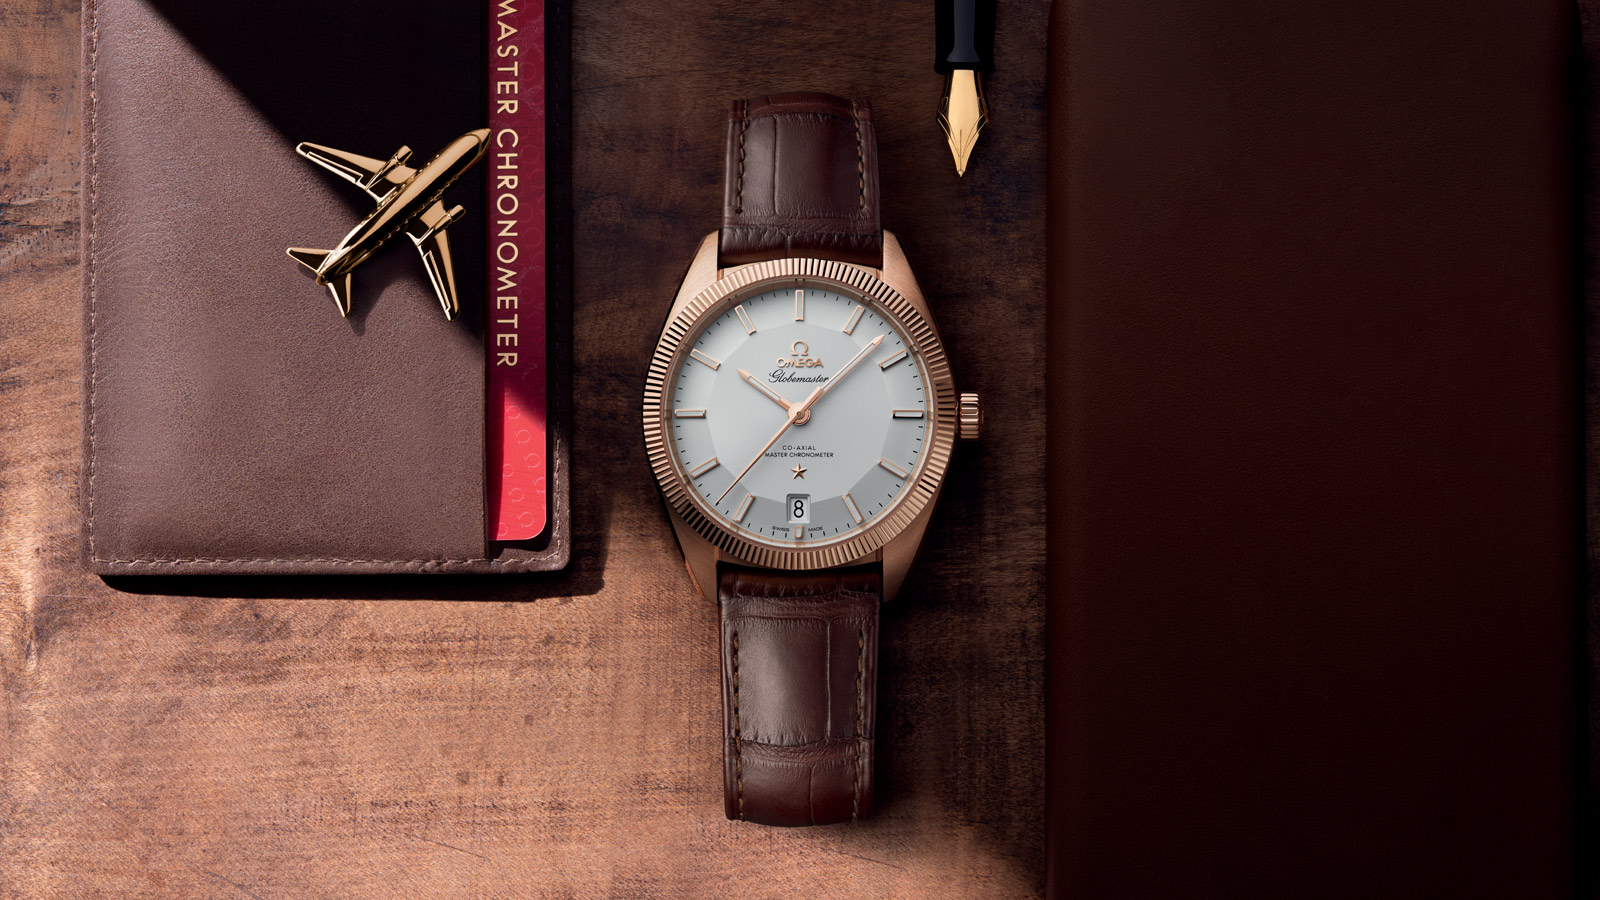 Constellation Globemaster Globemaster Omega Co‑Axial Master Chronometer 39 mm Referenz - 130.53.39.21.02.001